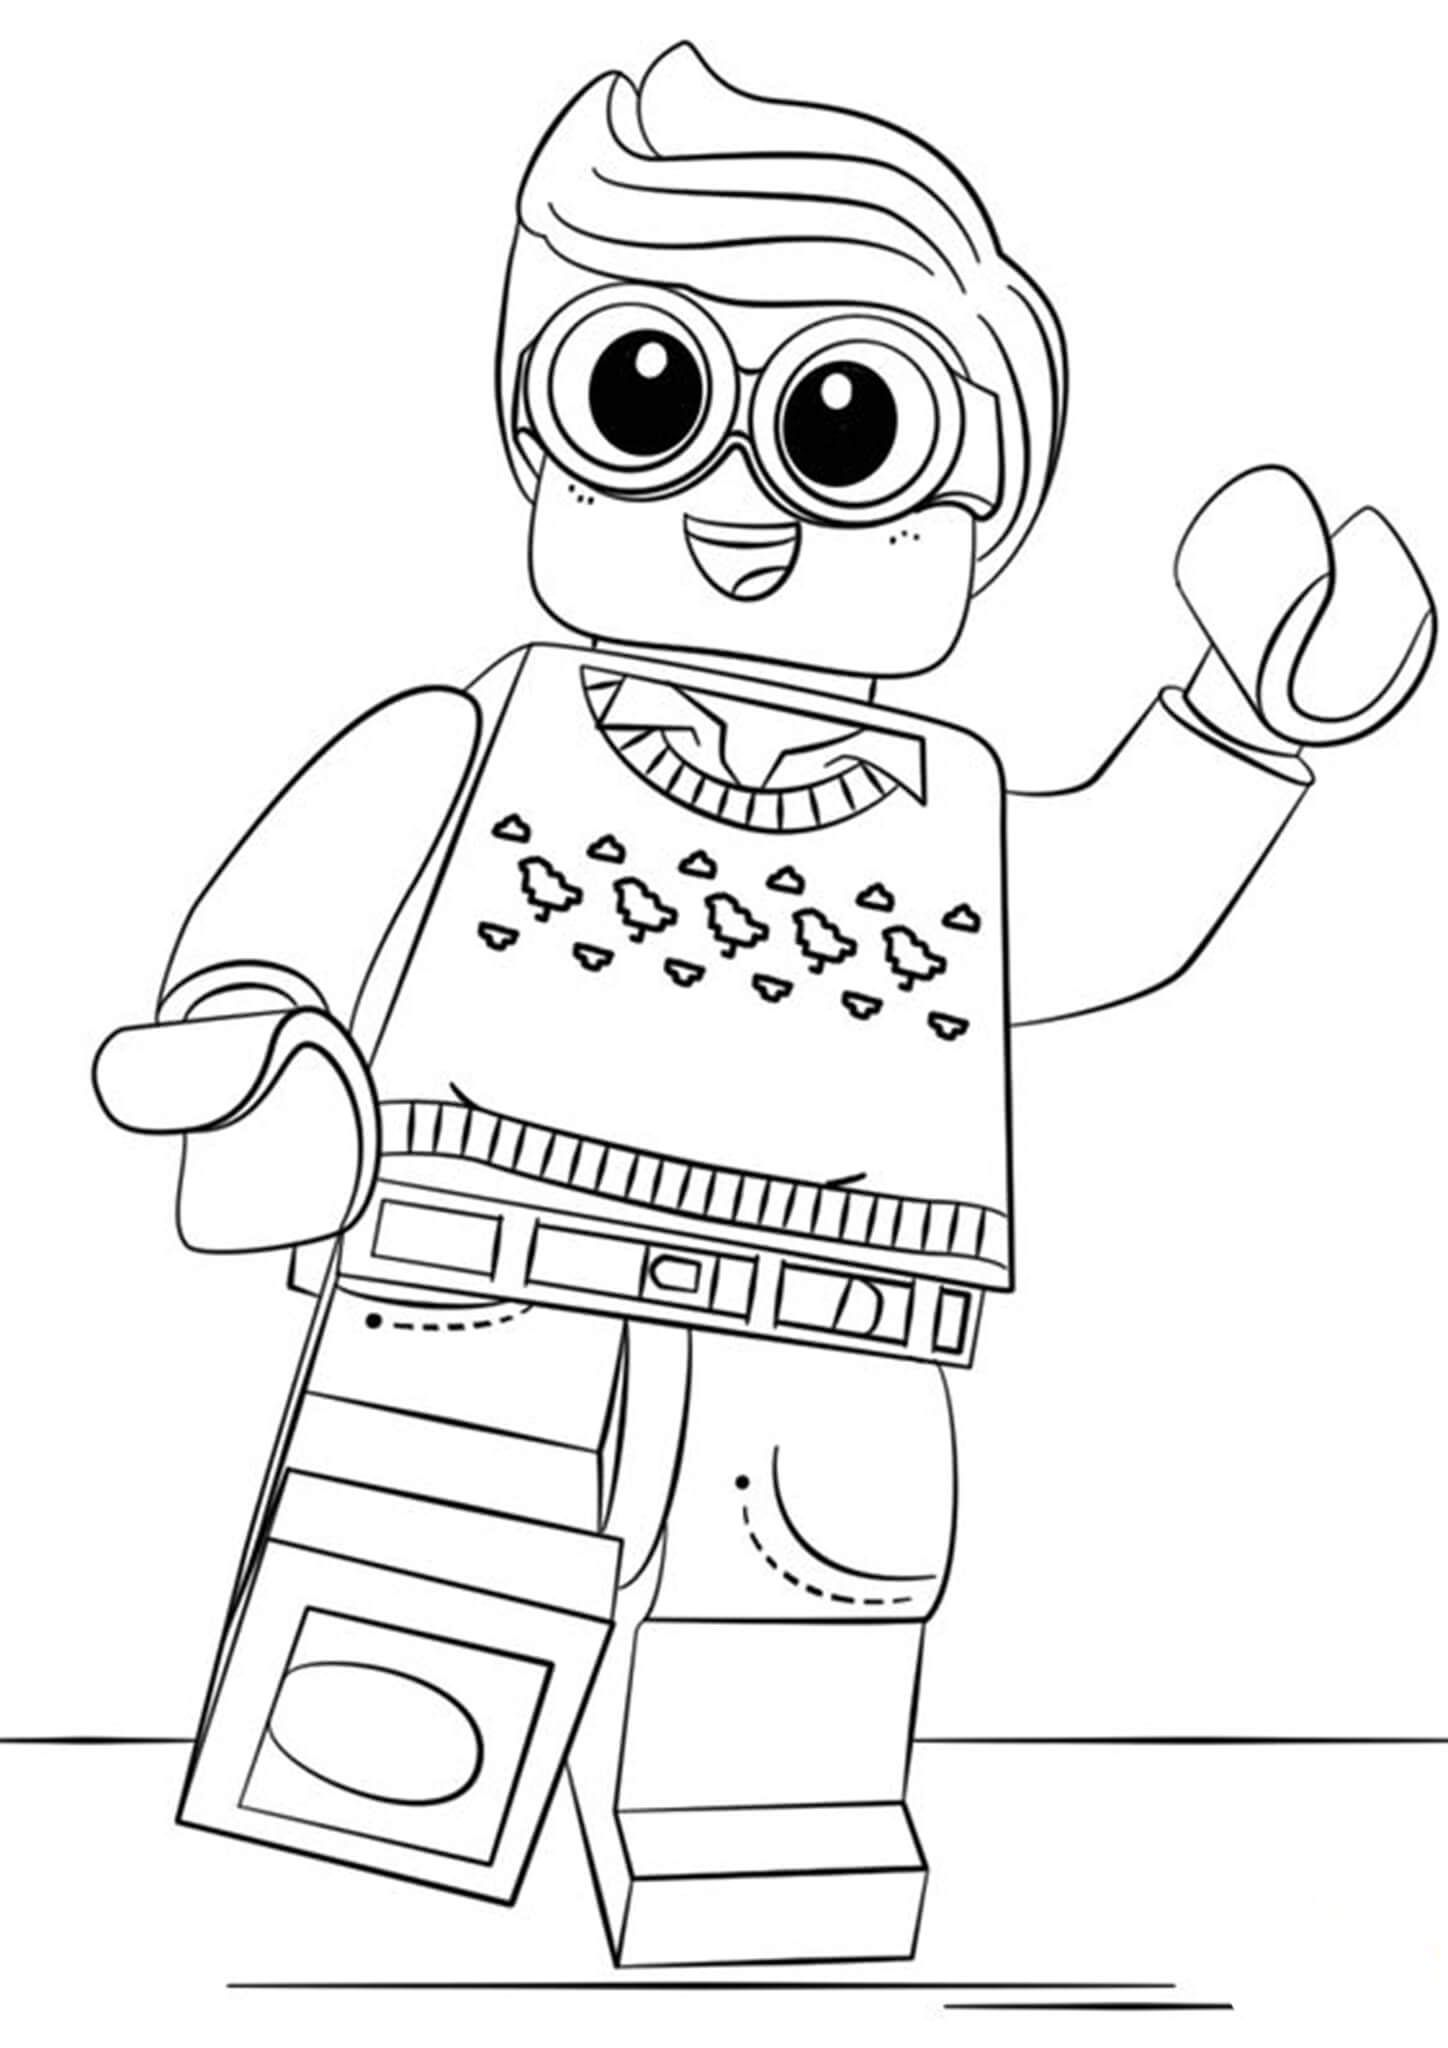 Lego Vulture Coloring Pages Amazing Design